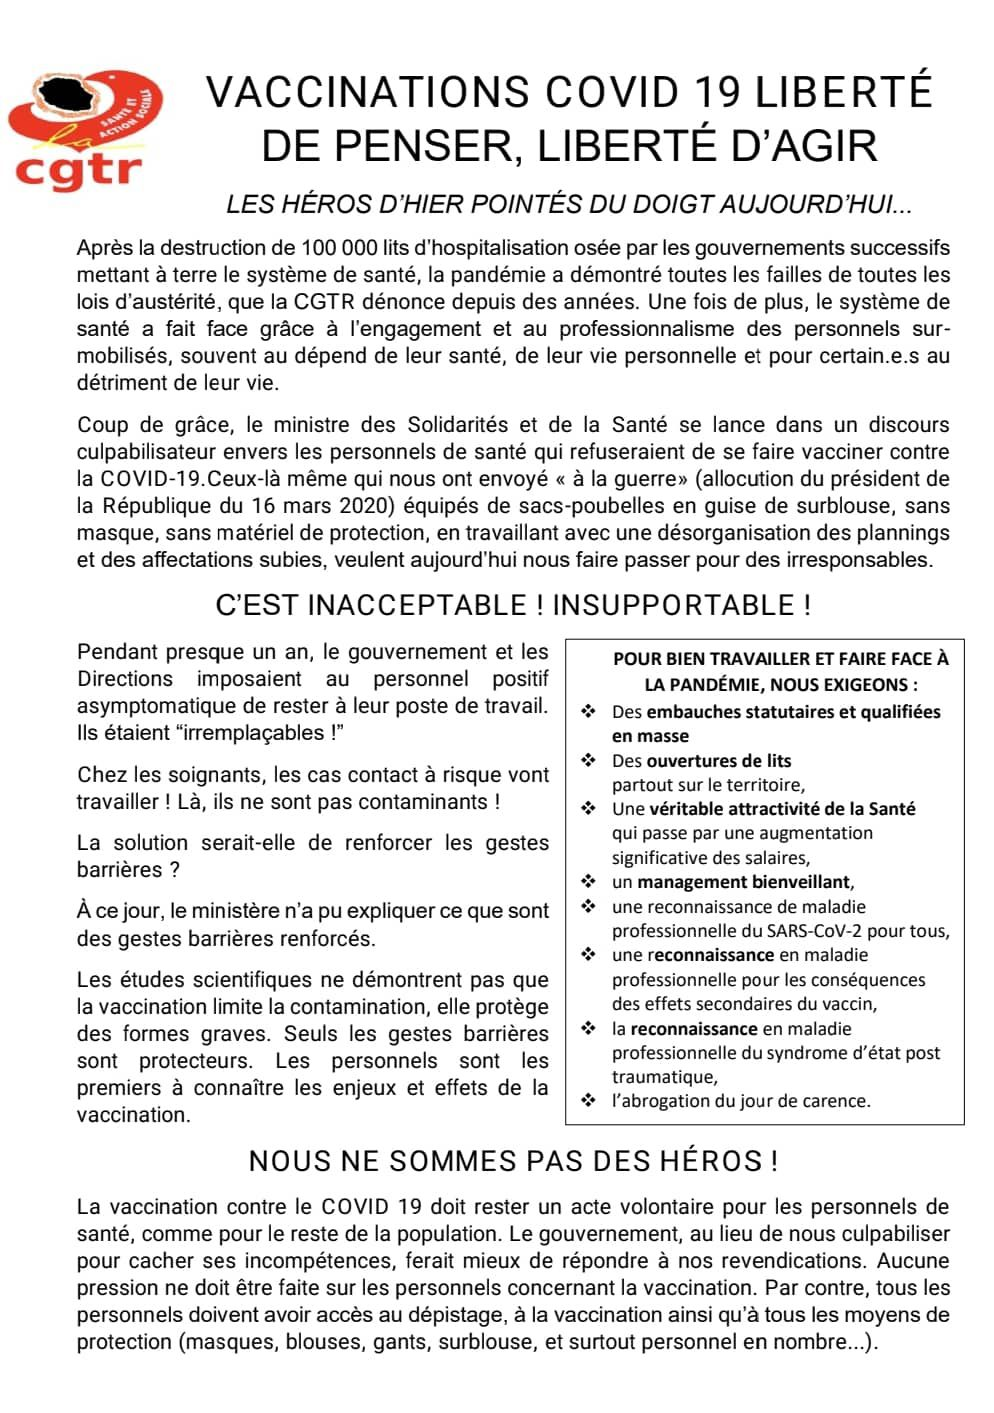 CGTR SANTE - Tract vaccinations Covid 19